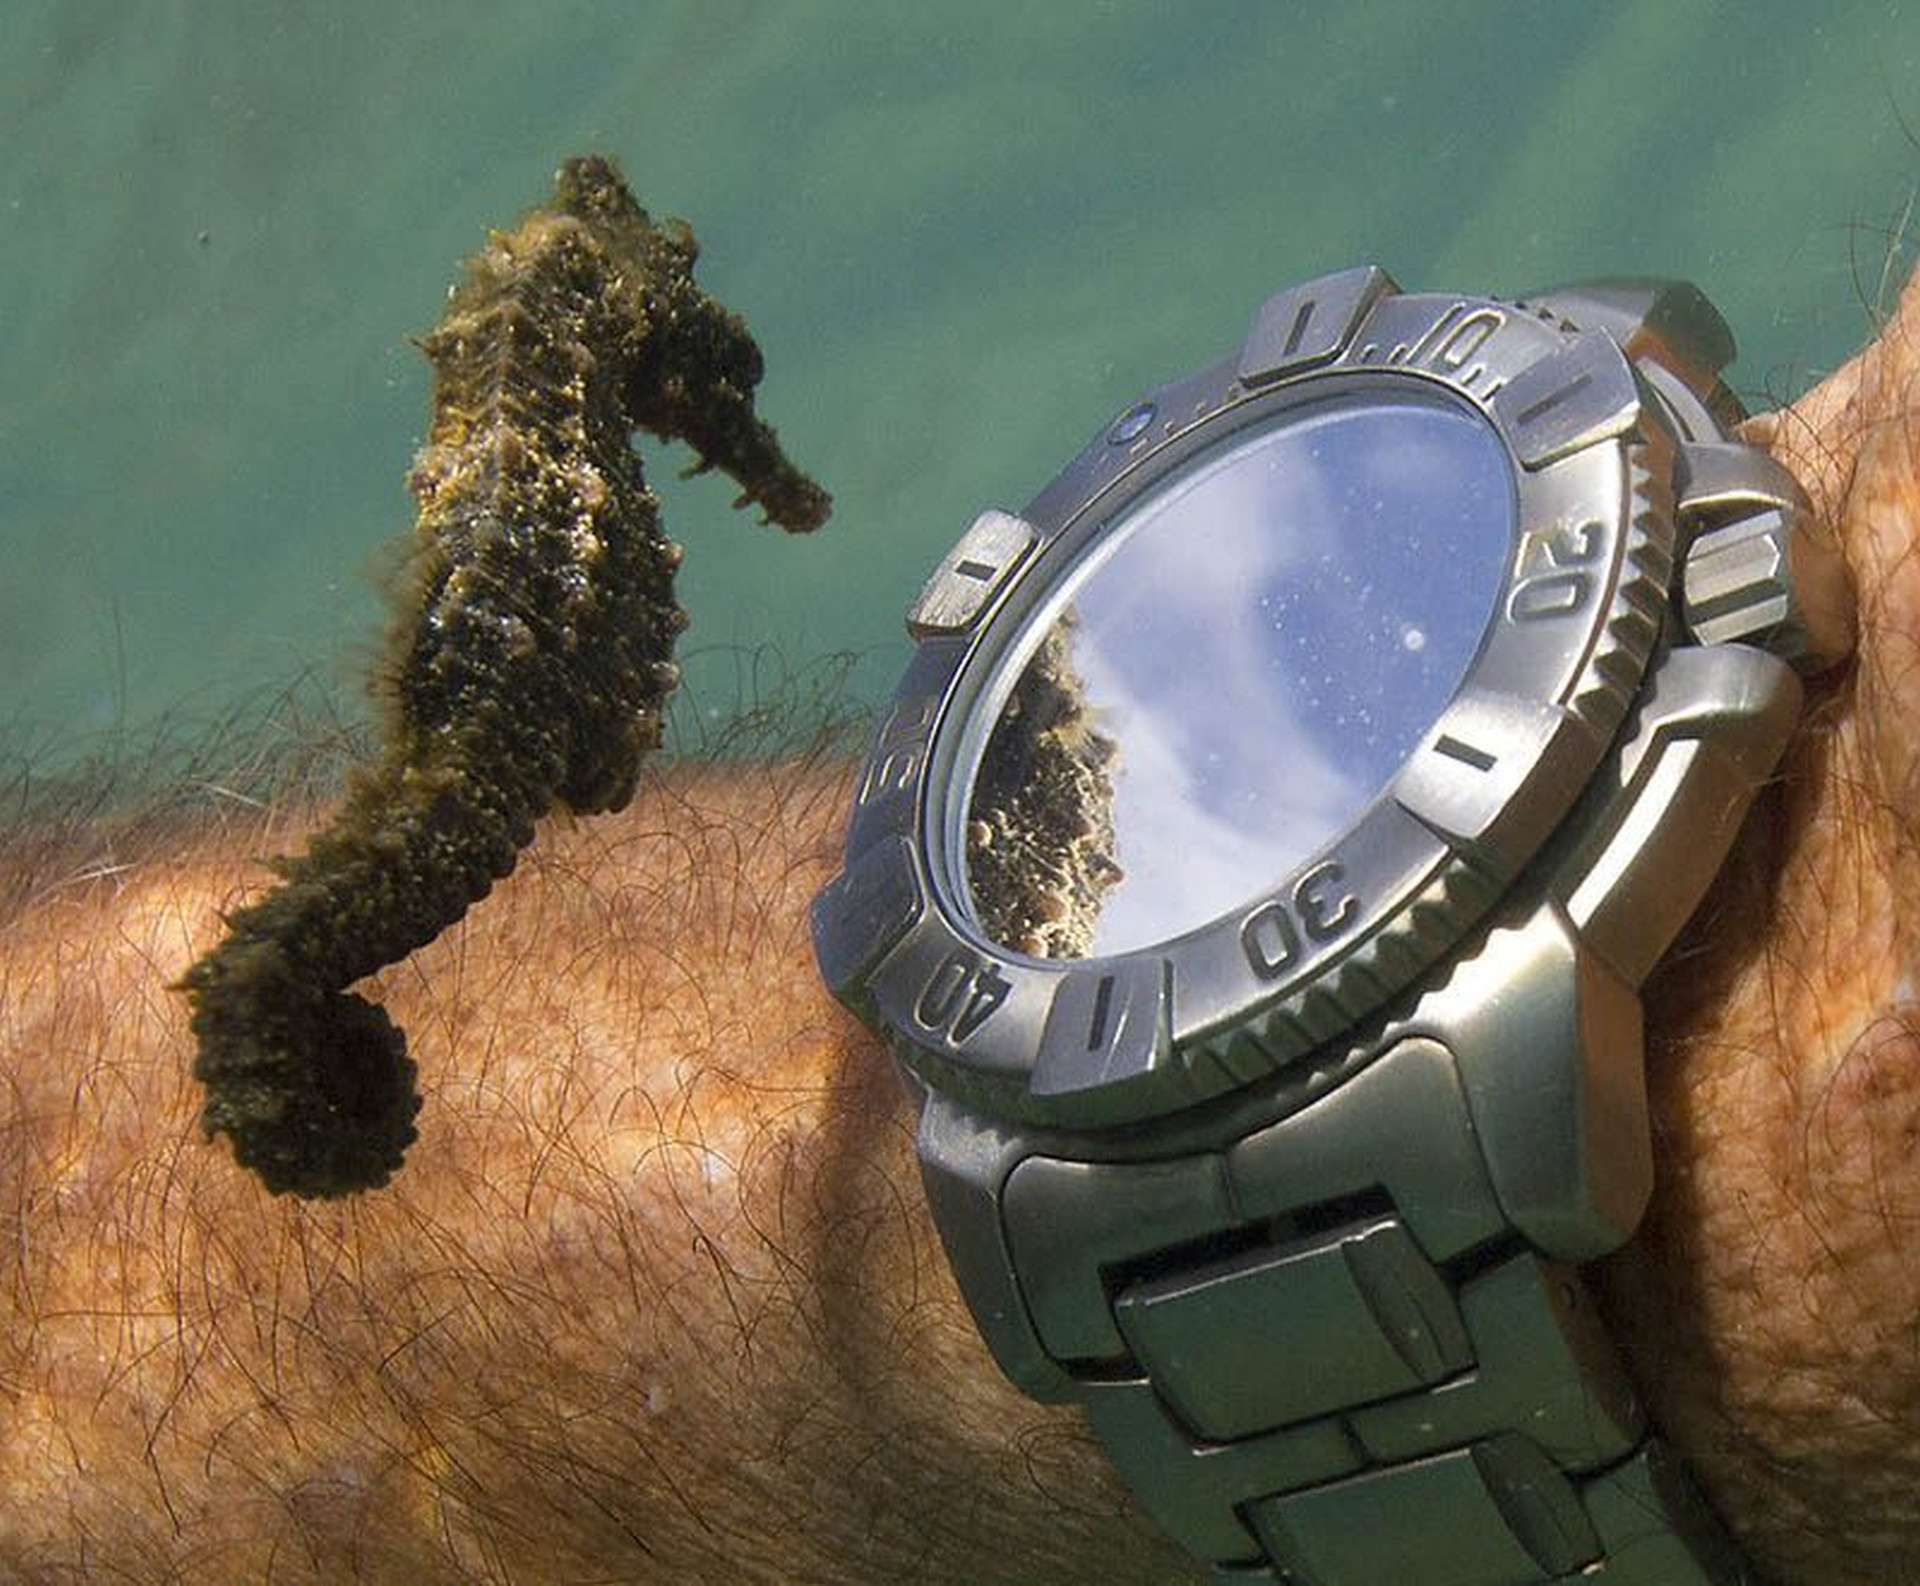 14 -  A still shot of a seahorse taking a moment to gaze at a diver's watch.